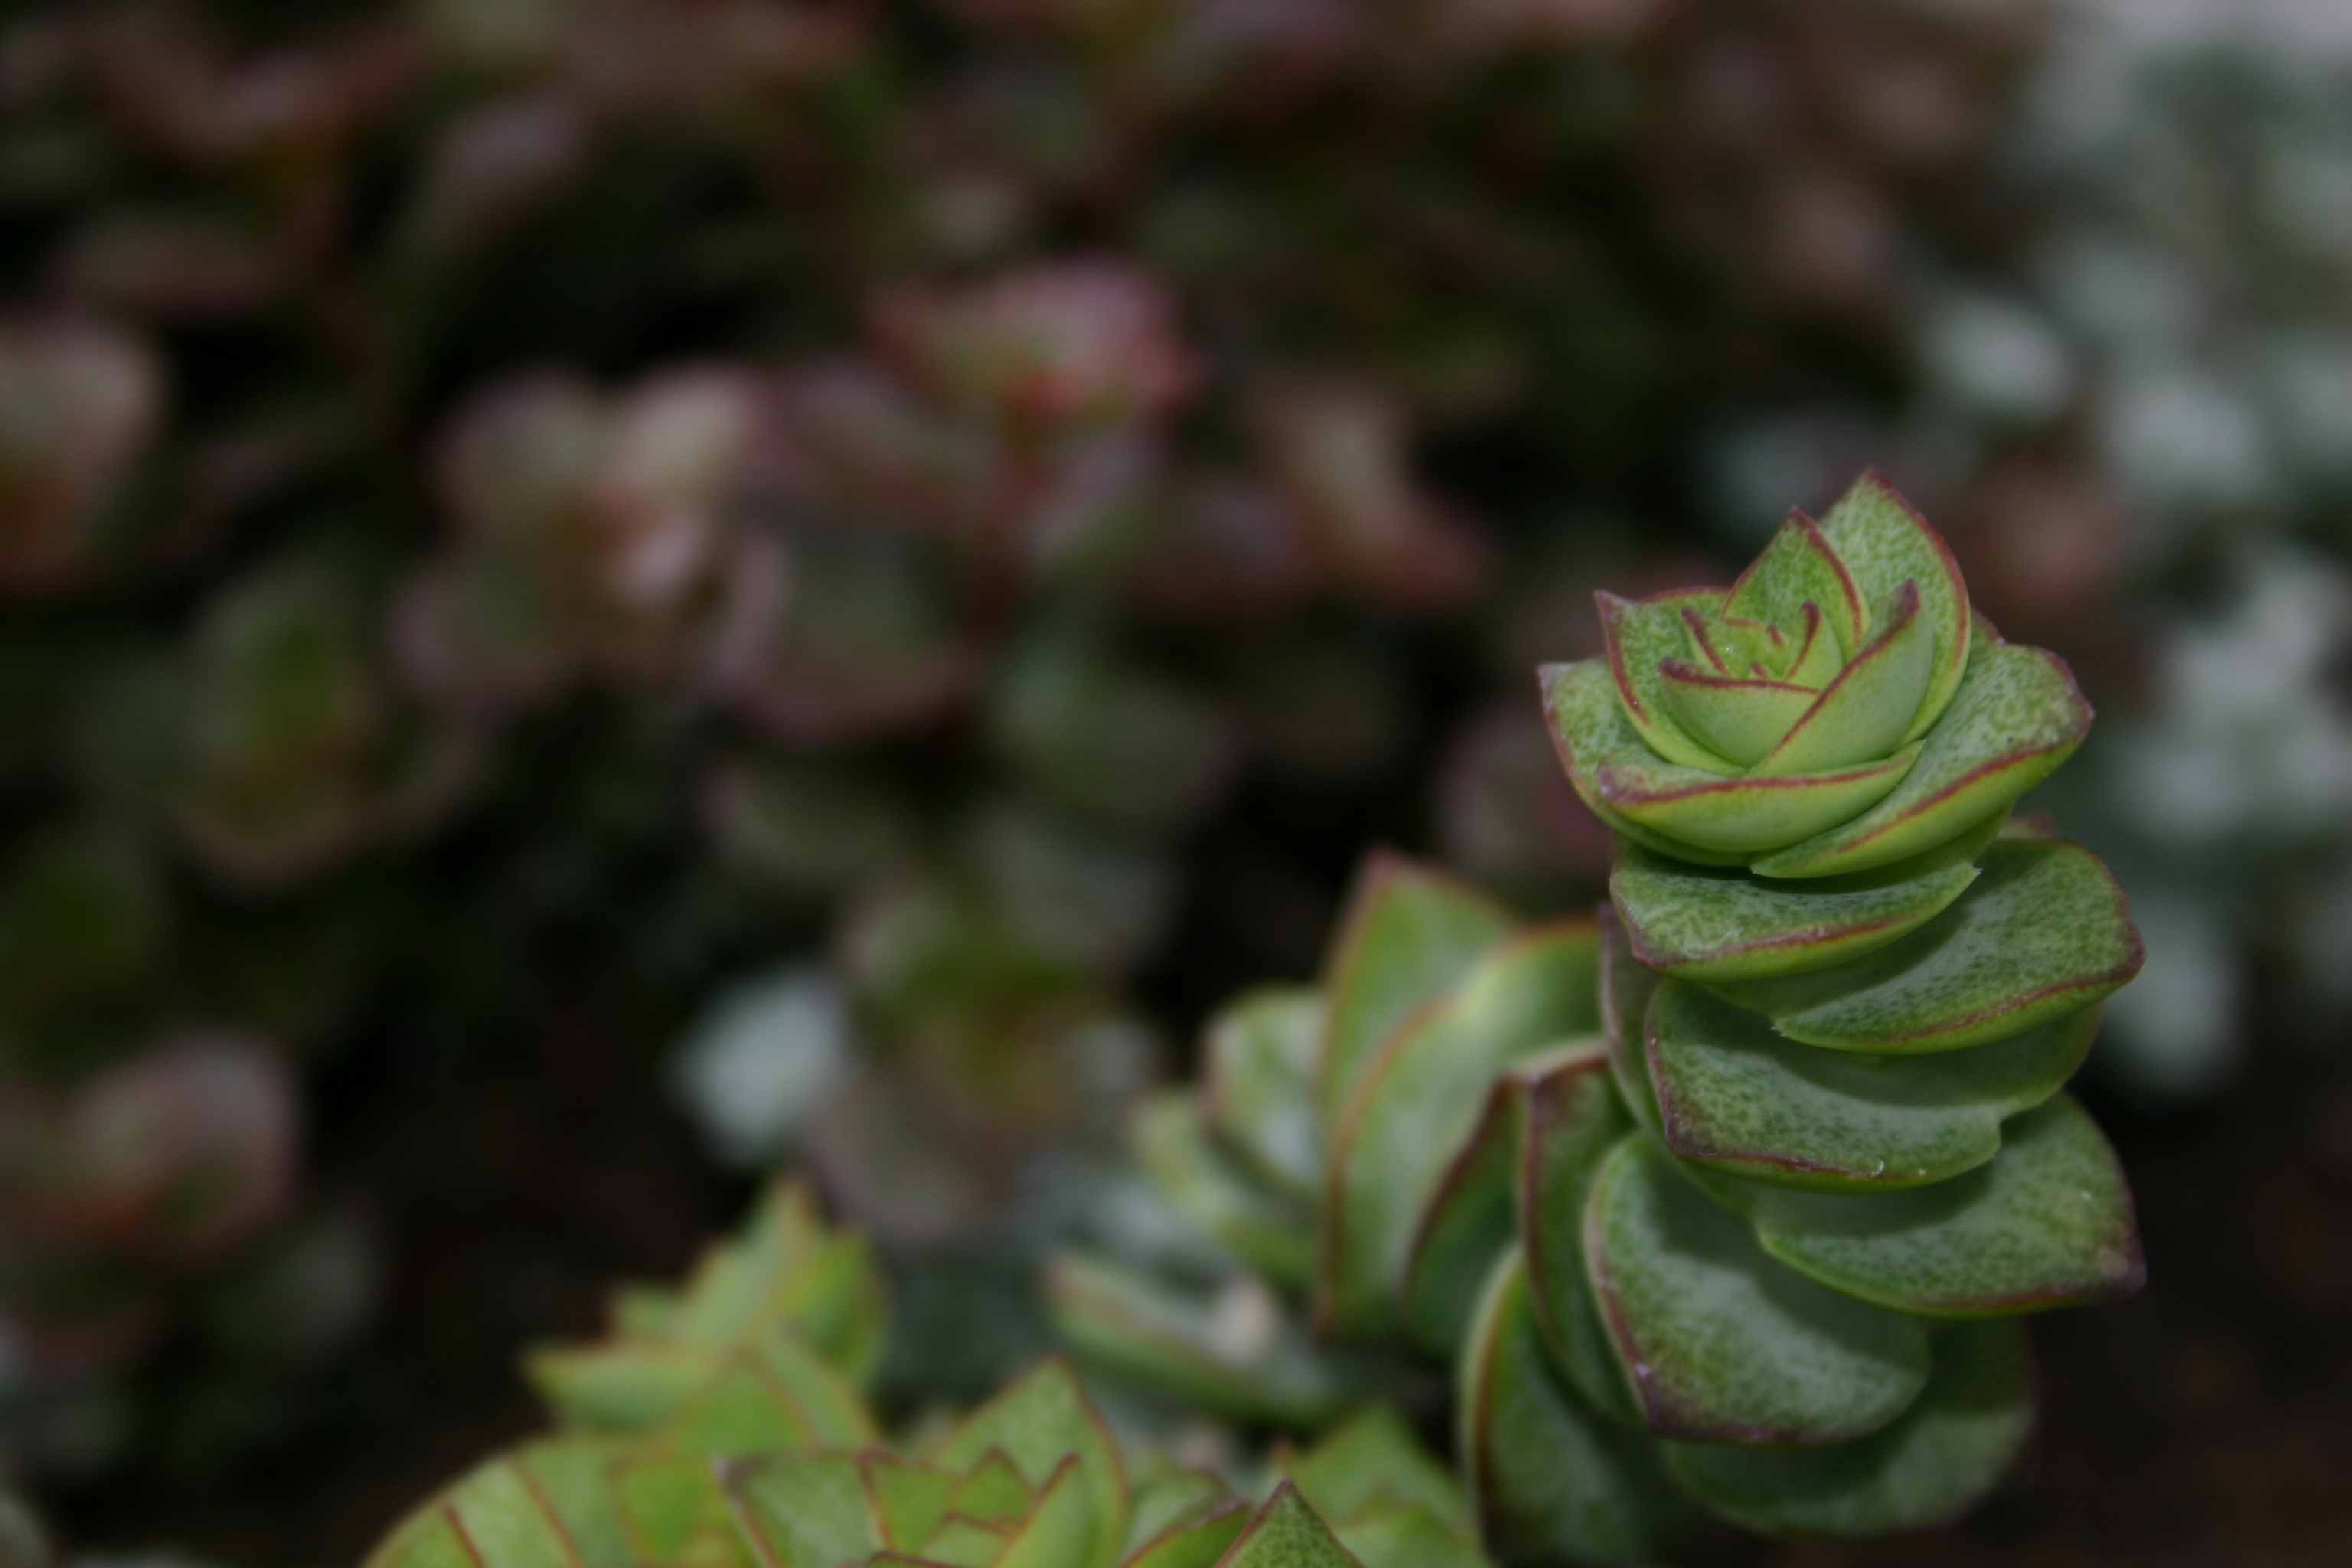 A succulent plant -- Crassula perforata variegata, AKA Necklace Vine or String of Buttons.  Bright green leaves with dark red edges.